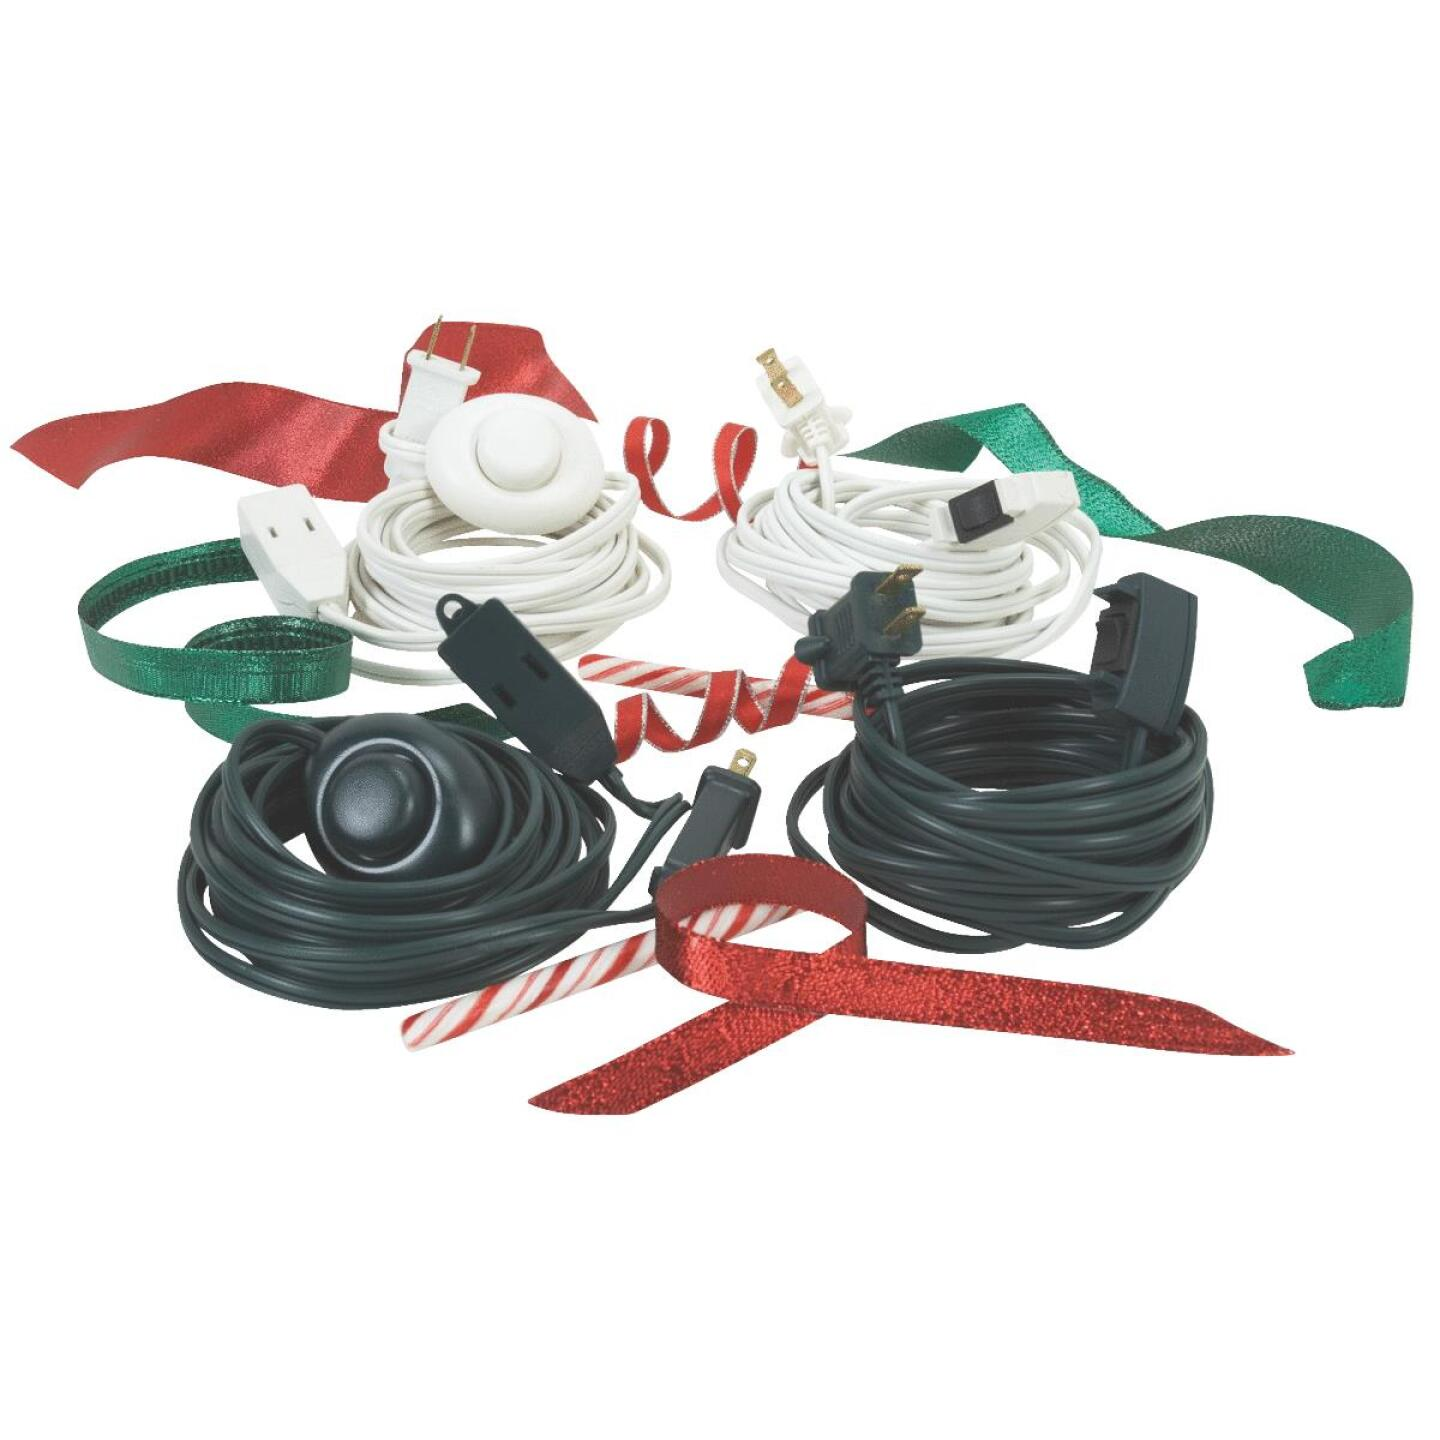 Do it 15 Ft. 16/2 White Extension Cord with Switch Image 2